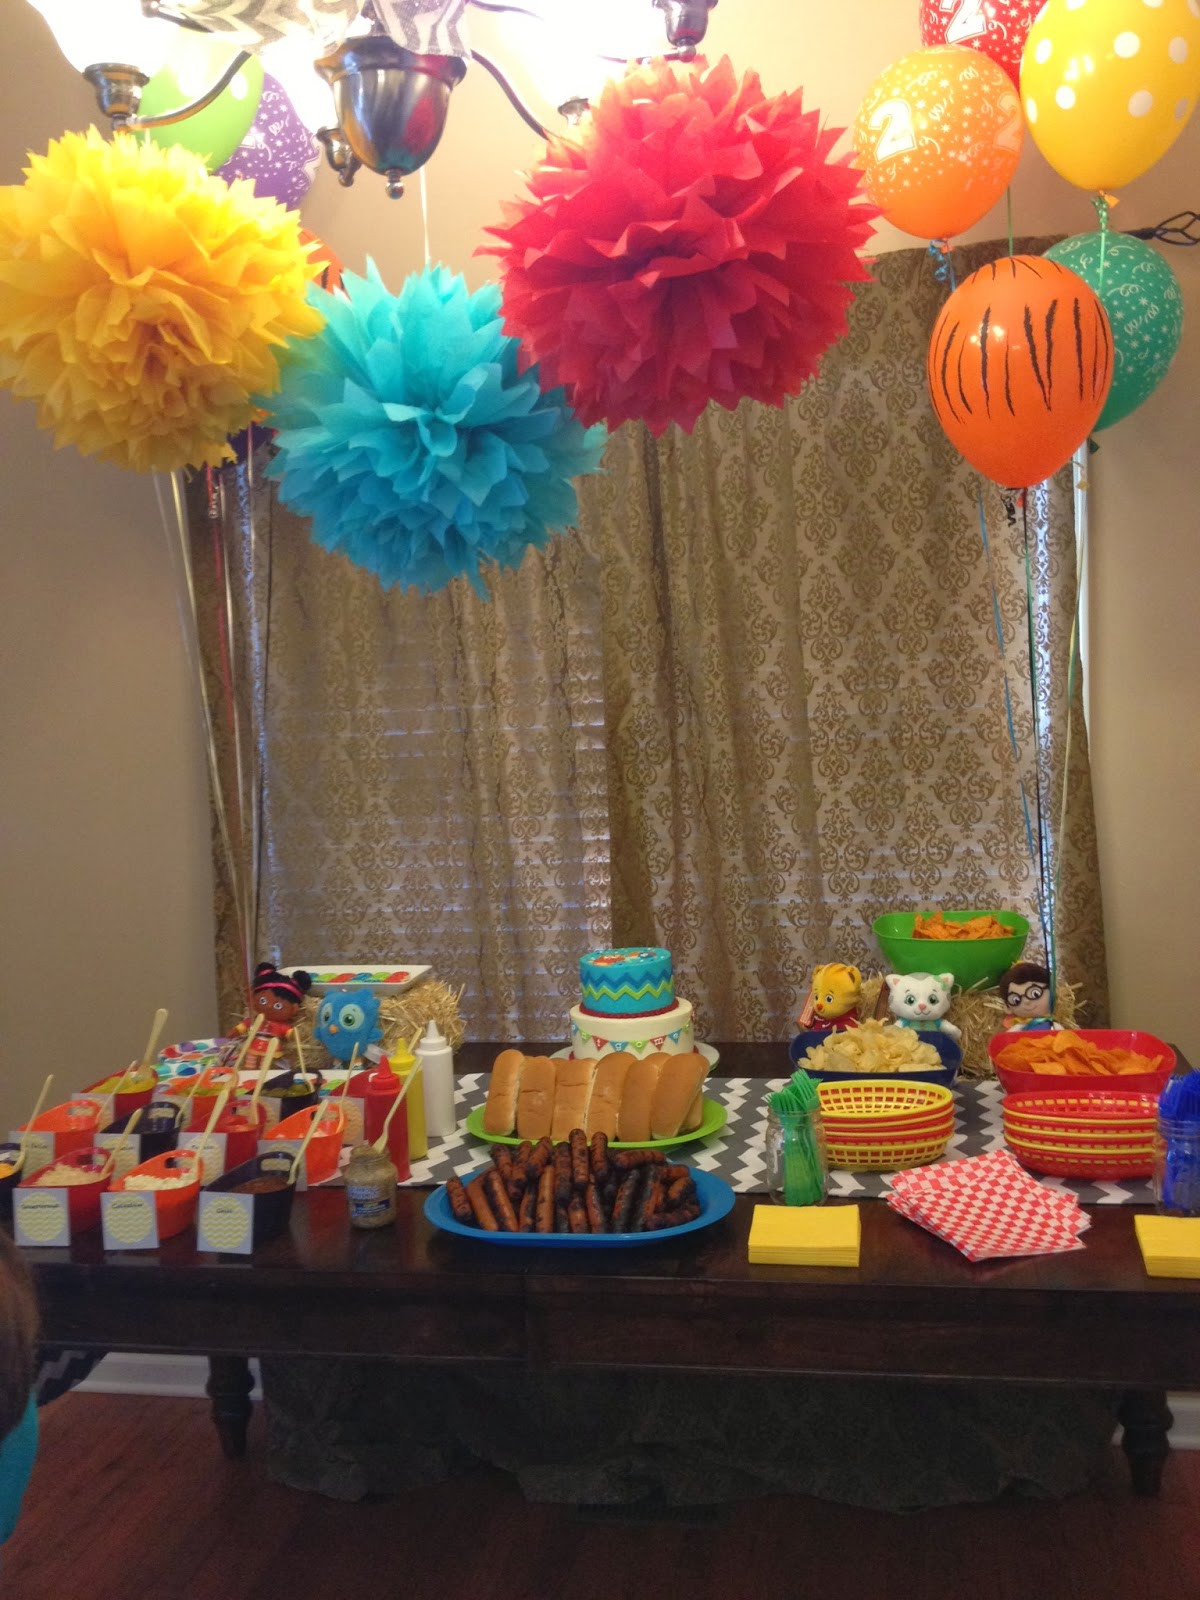 Best ideas about The Birthday Party . Save or Pin The Southern Front Door Montgomery s Daniel Tiger 2nd Now.